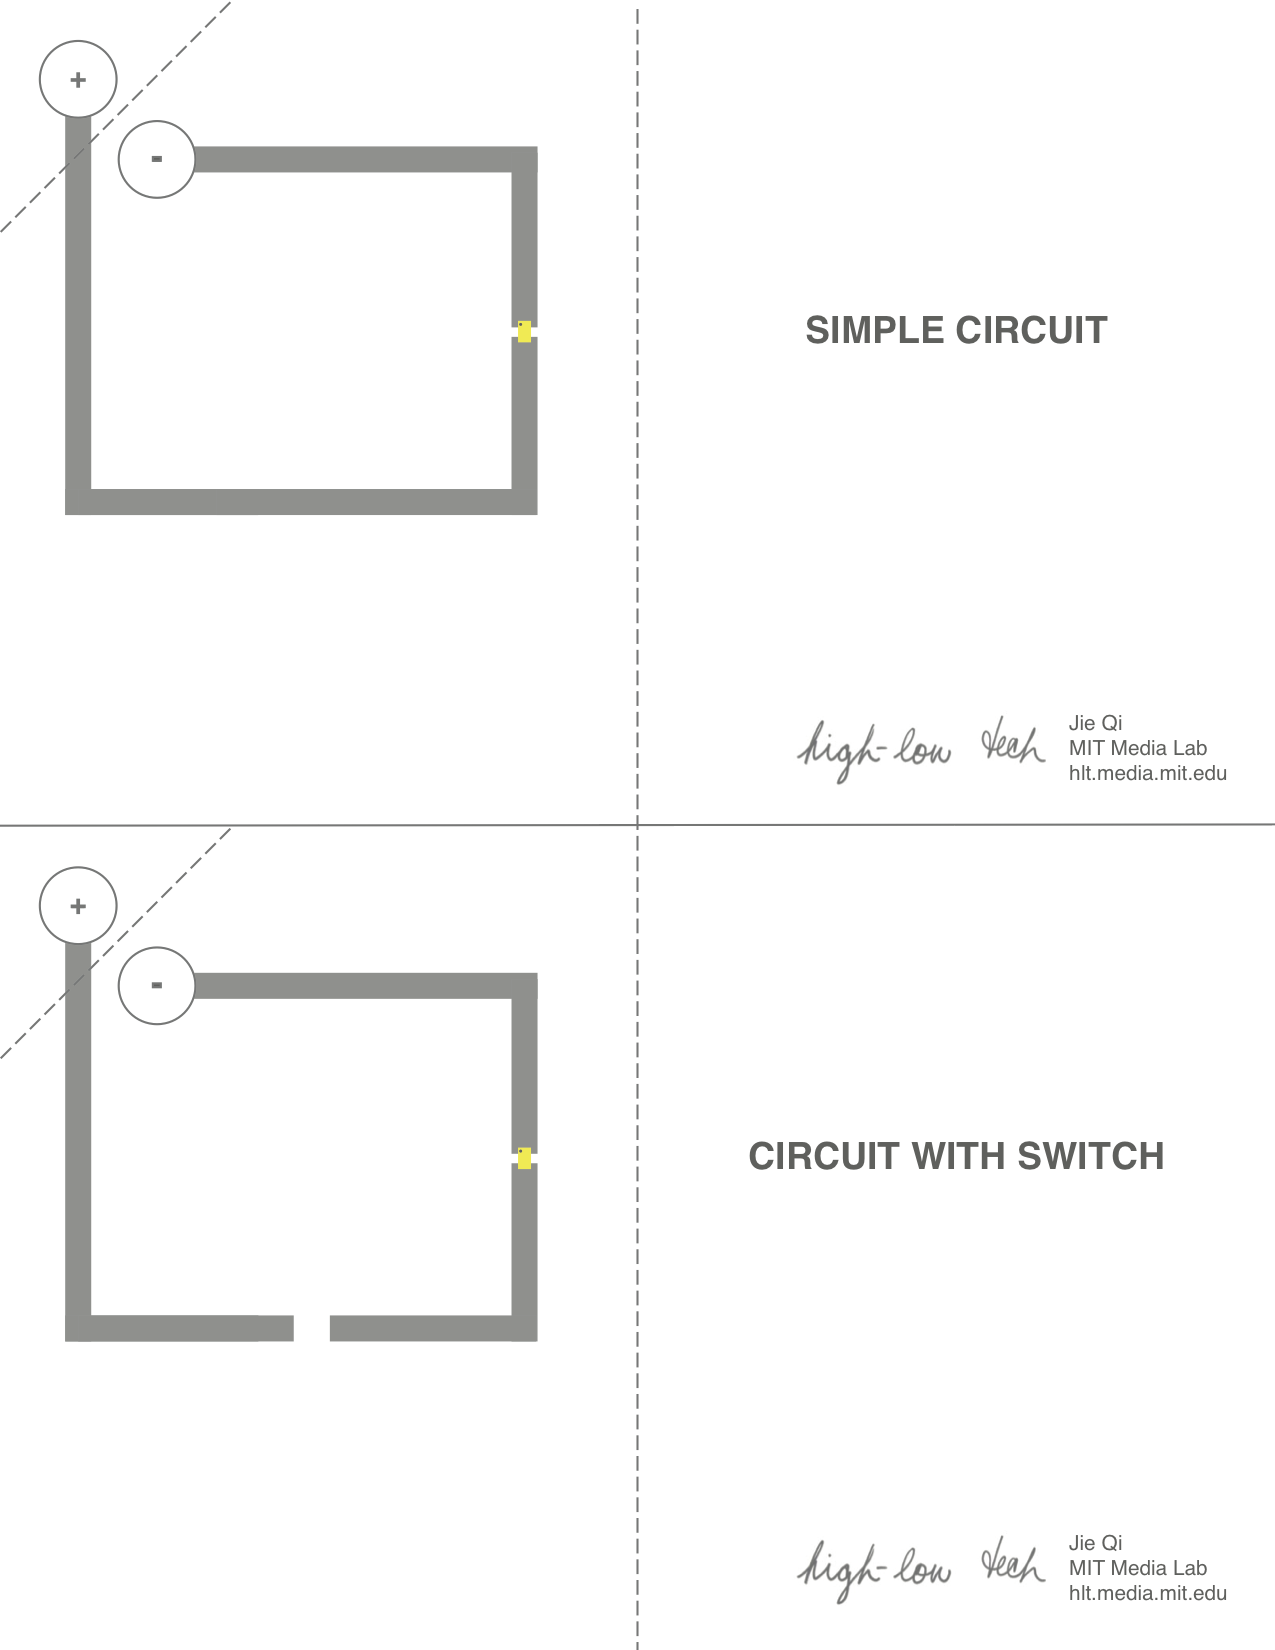 You Are Likely To See When Looking At Diagrams Of Electrical Circuits